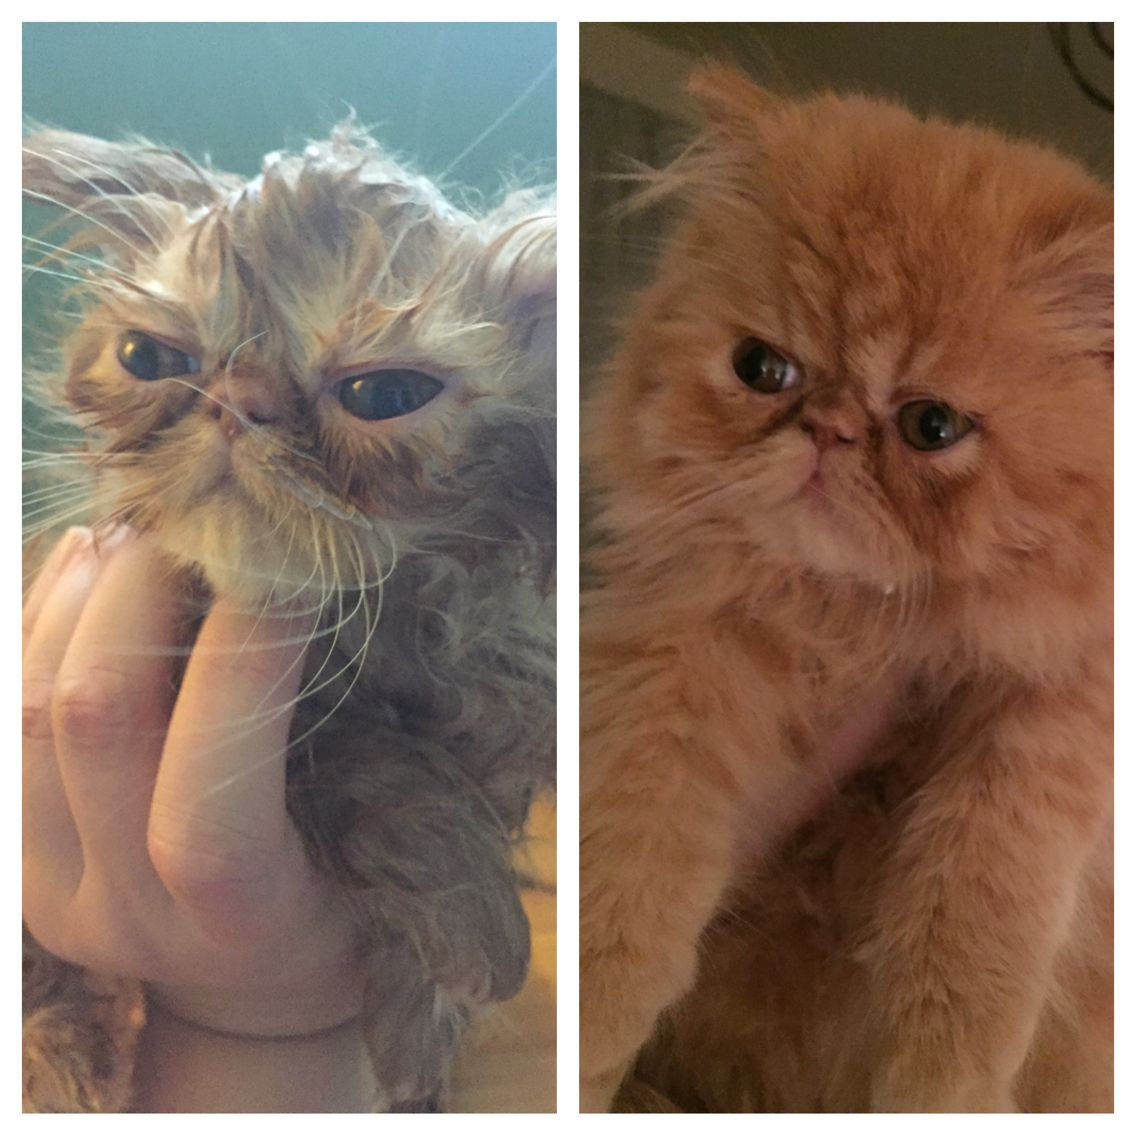 Before And After Blow Drying My Red Persian Kitten After Her Bath She Looks Kind Of Like A Gremlin When Wet Then The Orange C Persian Kittens Pets Orange Cat